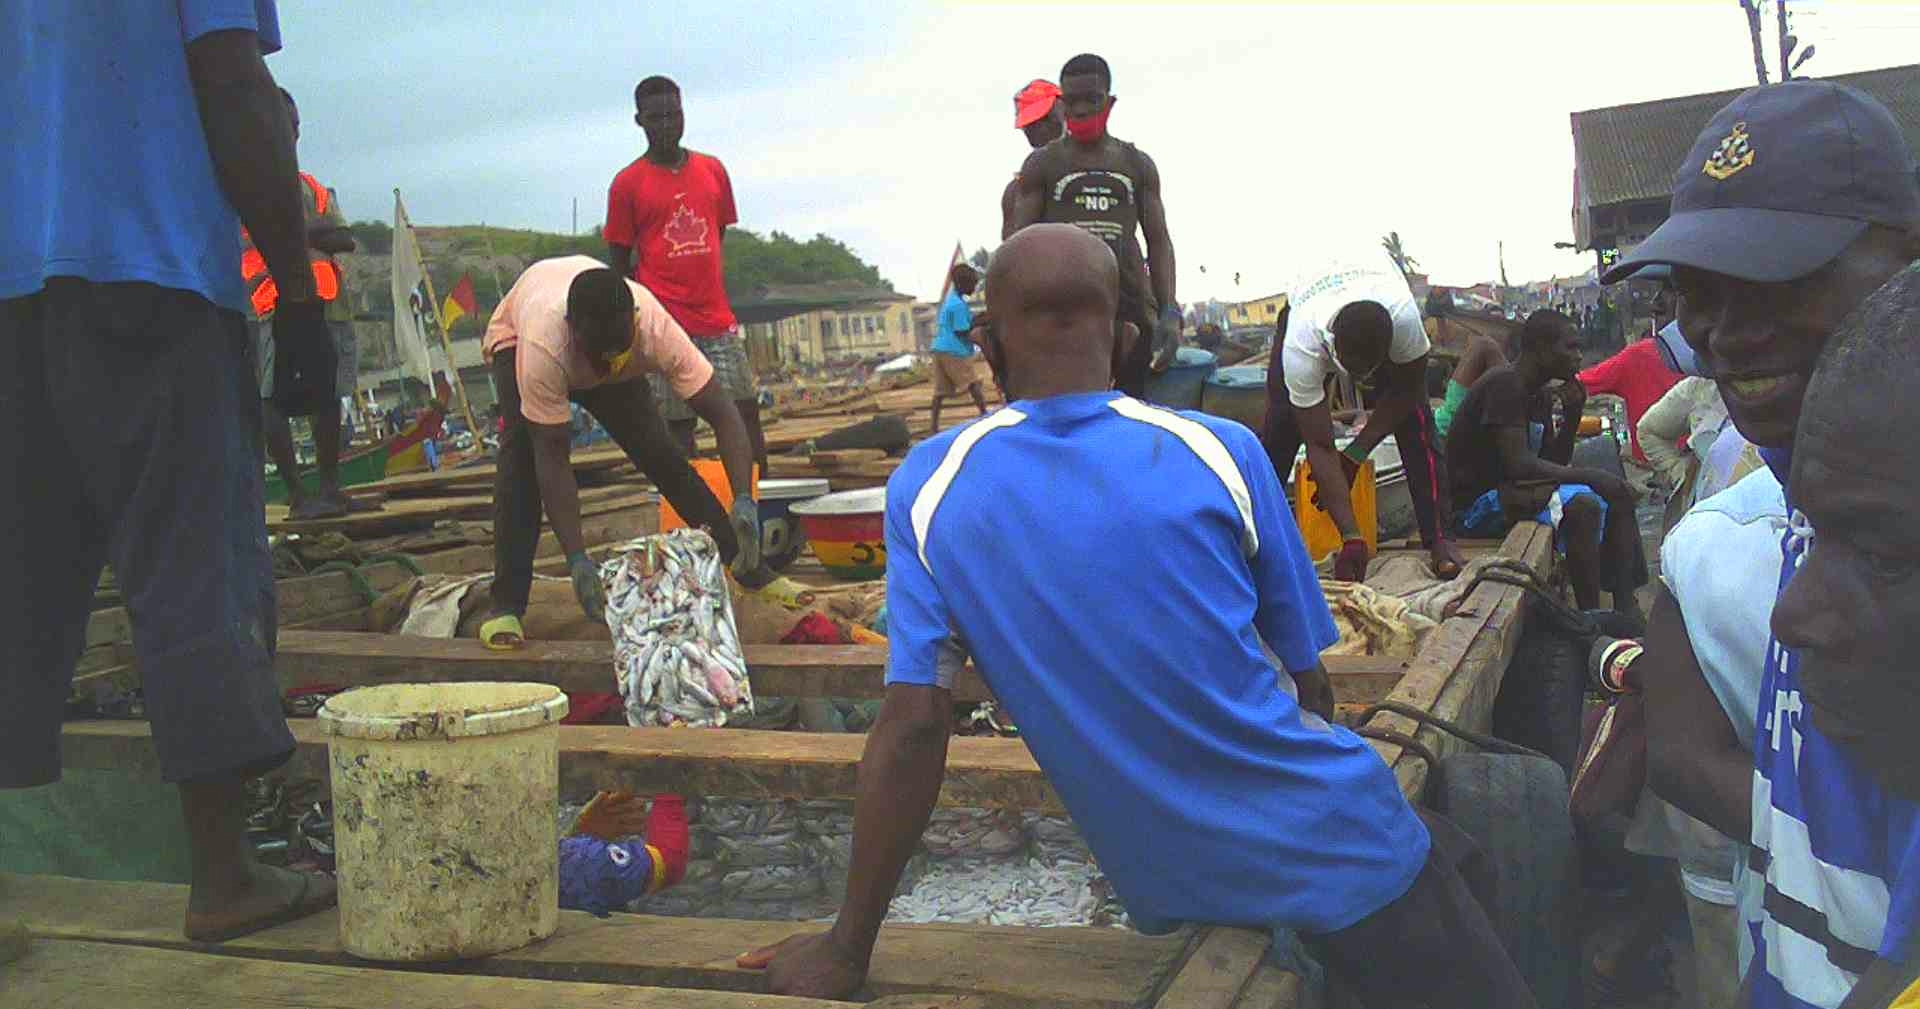 Illegal saiko fishing continues openly despite government assurances